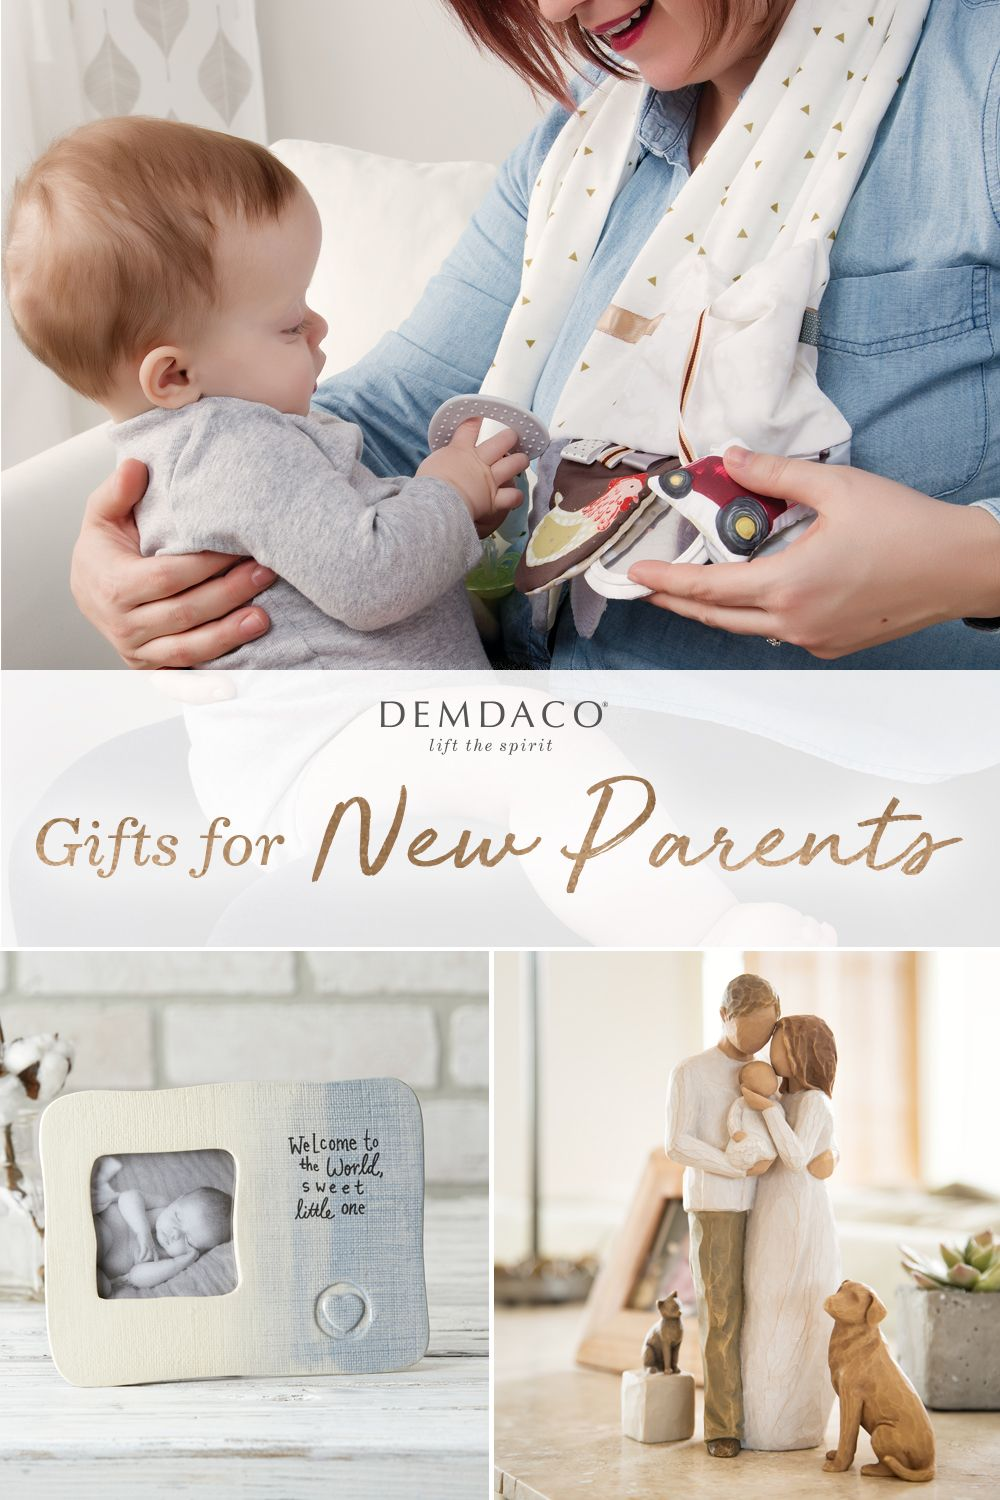 Gift Ideas For New Parents Newborn Baby Items Special Baby Gift Gifts For New Parents